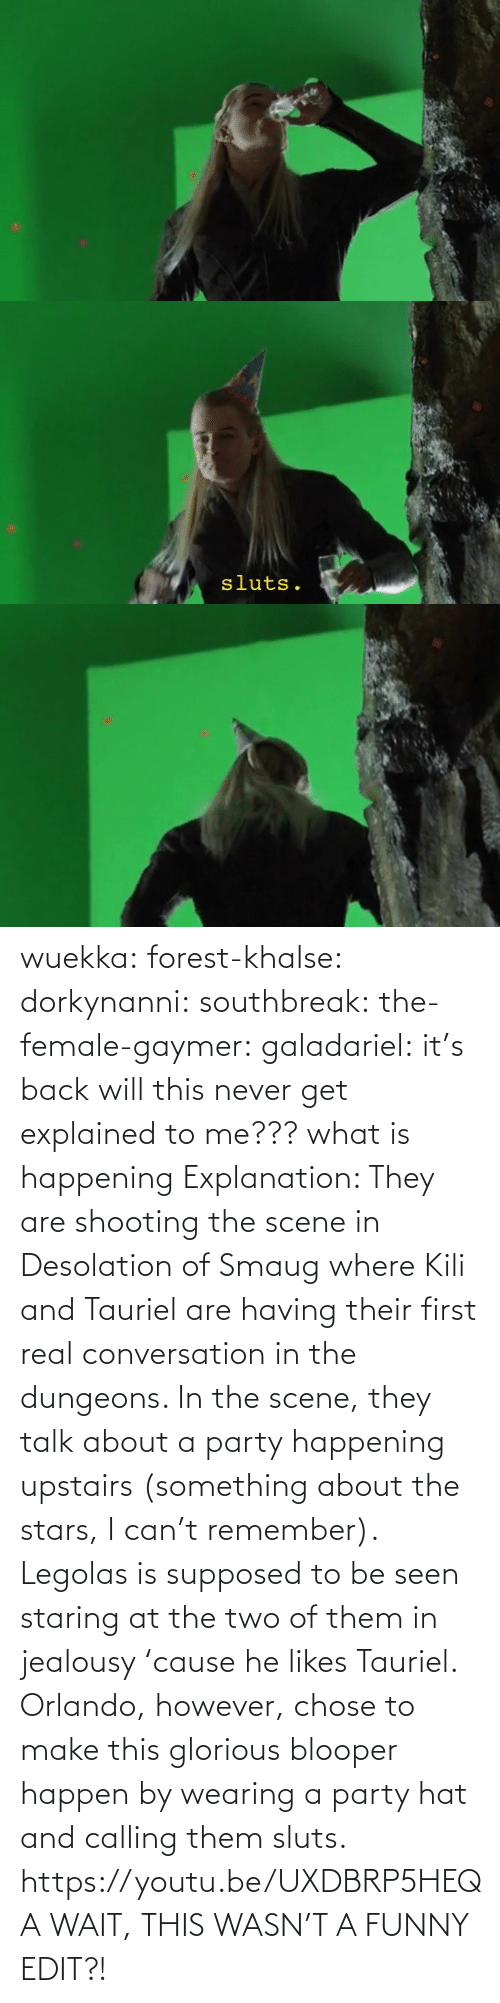 opaque: wuekka: forest-khalse:   dorkynanni:  southbreak:   the-female-gaymer:   galadariel:  it's back   will this never get explained to me???    what is happening    Explanation:  They are shooting the scene in Desolation of Smaug where Kili and Tauriel are having their first real conversation in the dungeons.  In the scene, they talk about a party happening upstairs (something about the stars, I can't remember). Legolas is supposed to be seen staring at the two of them in jealousy 'cause he likes Tauriel.  Orlando, however, chose to make this glorious blooper happen by wearing a party hat and calling them sluts.    https://youtu.be/UXDBRP5HEQA    WAIT, THIS WASN'T A FUNNY EDIT?!